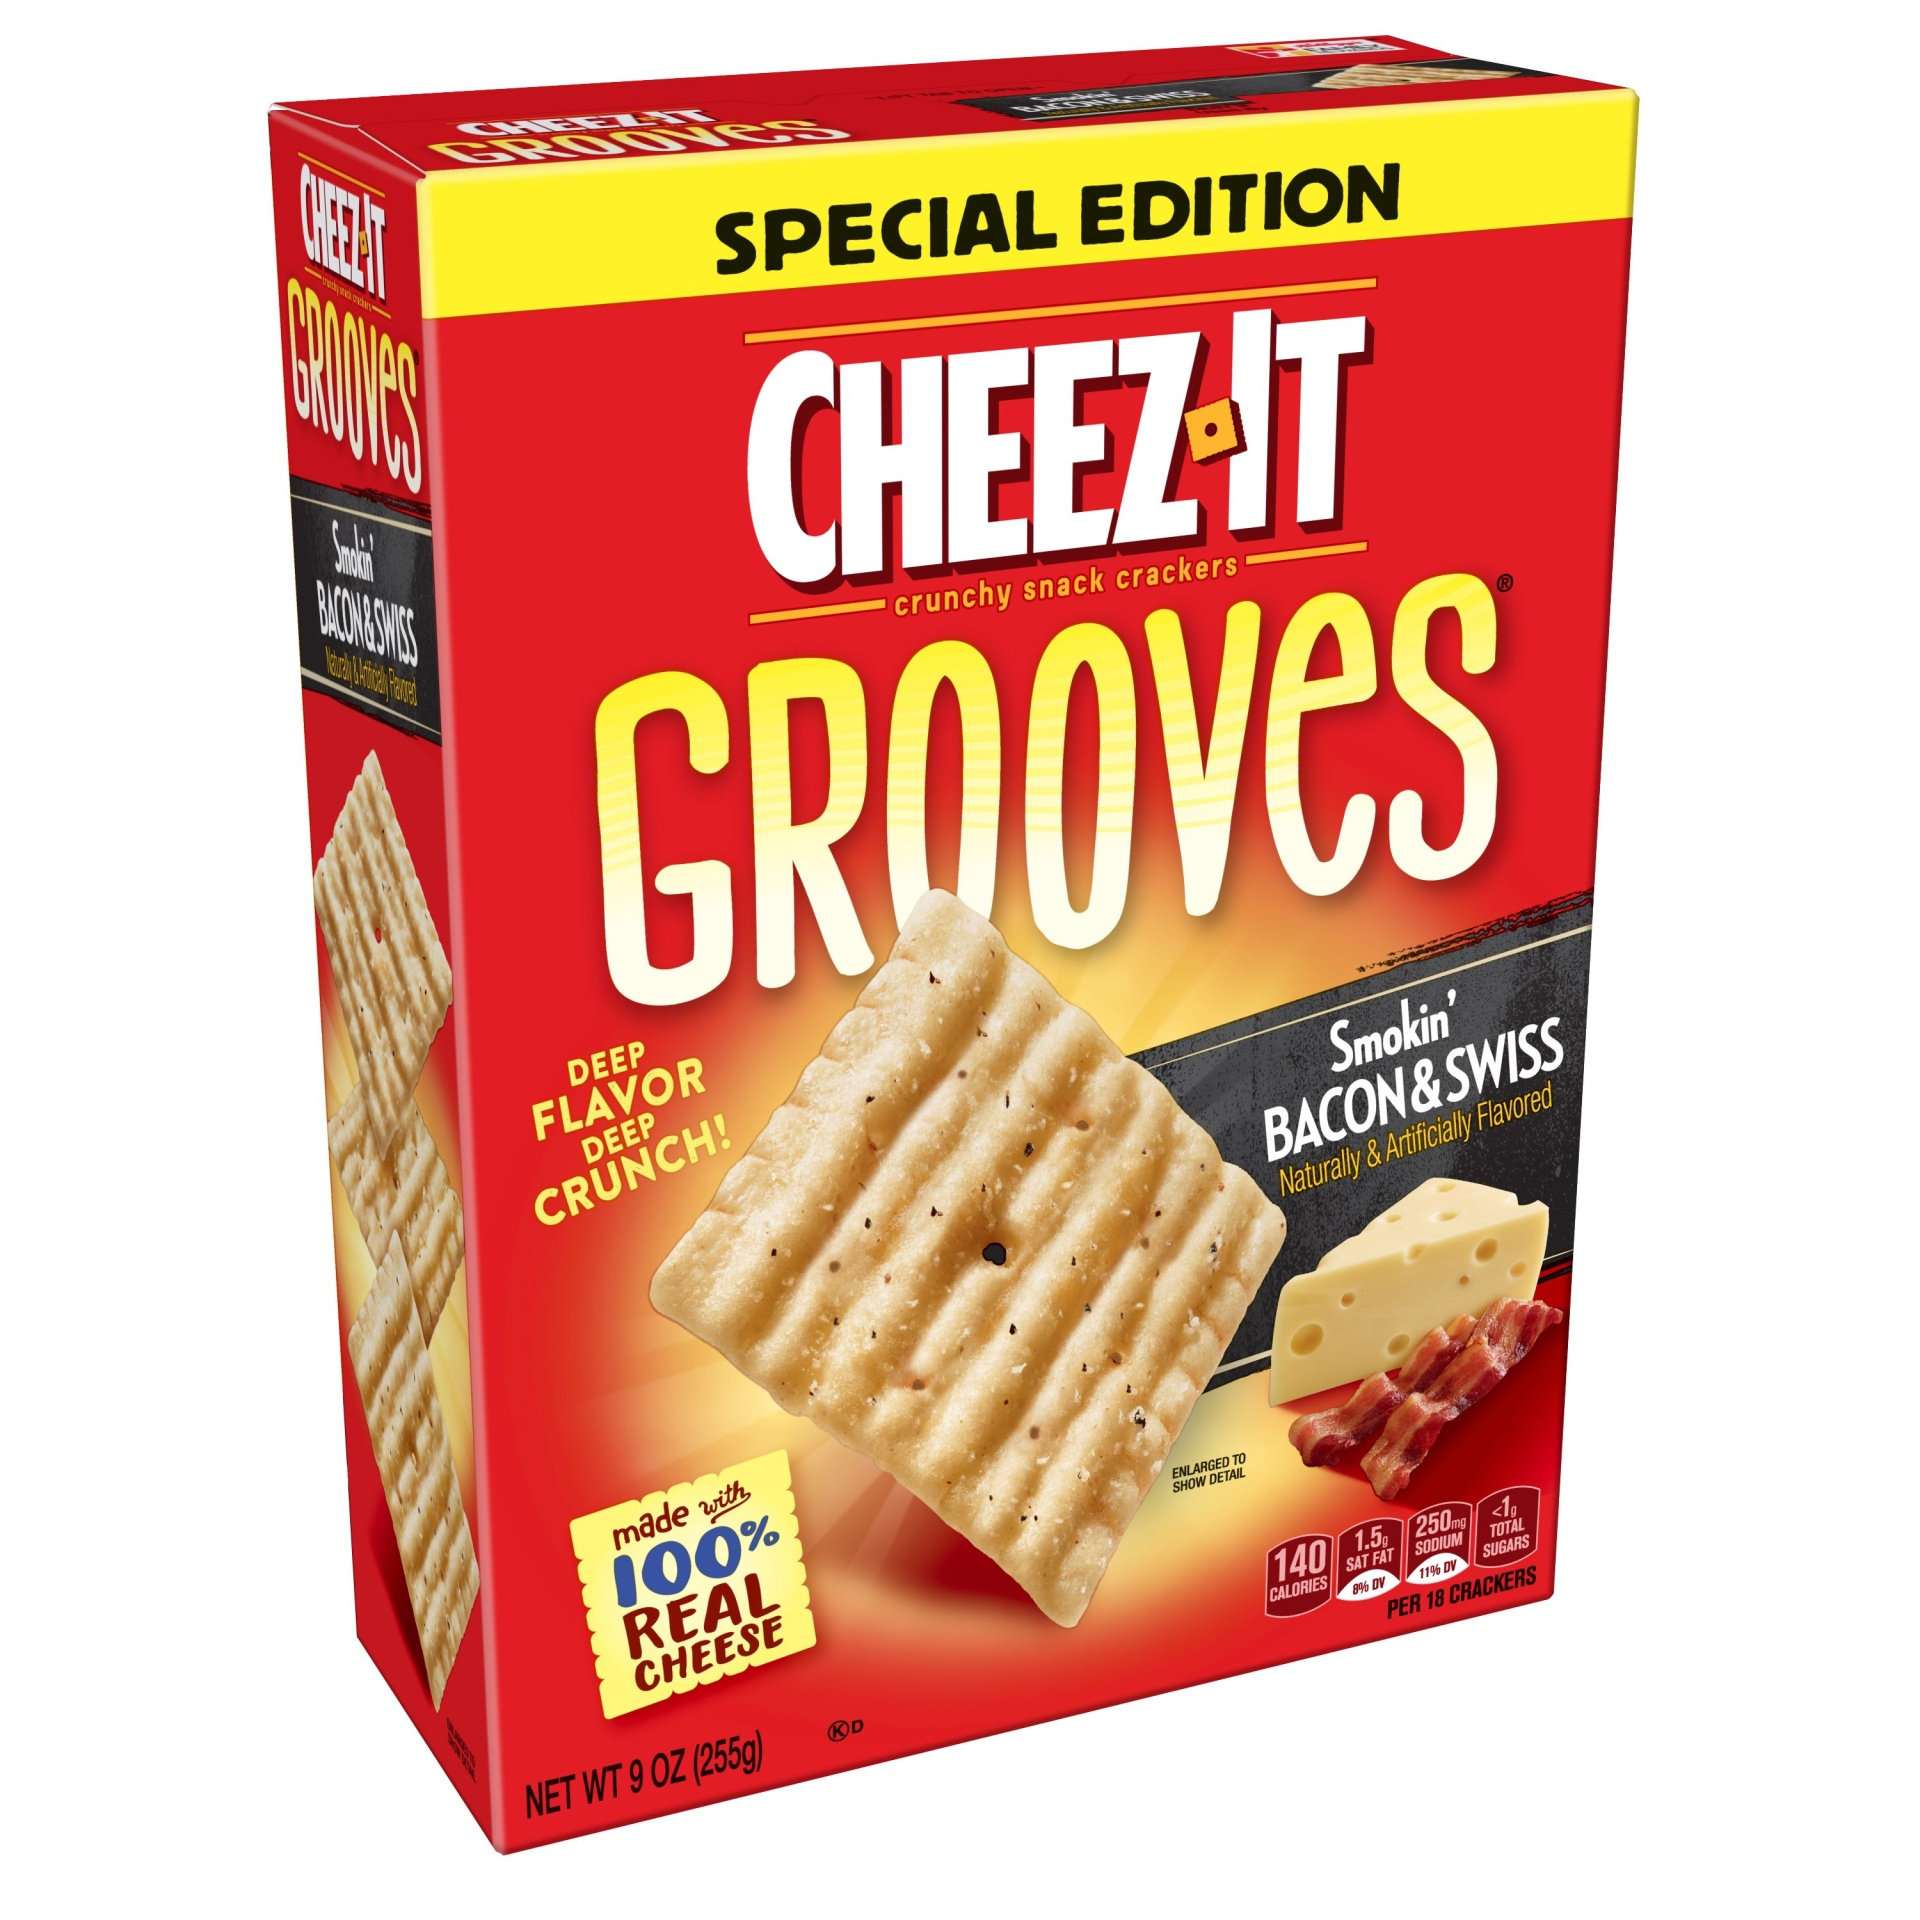 slide 1 of 4, Cheez-It Crunchy Cheese Snack Crackers Smokin' Bacon and Swiss Special Edition,